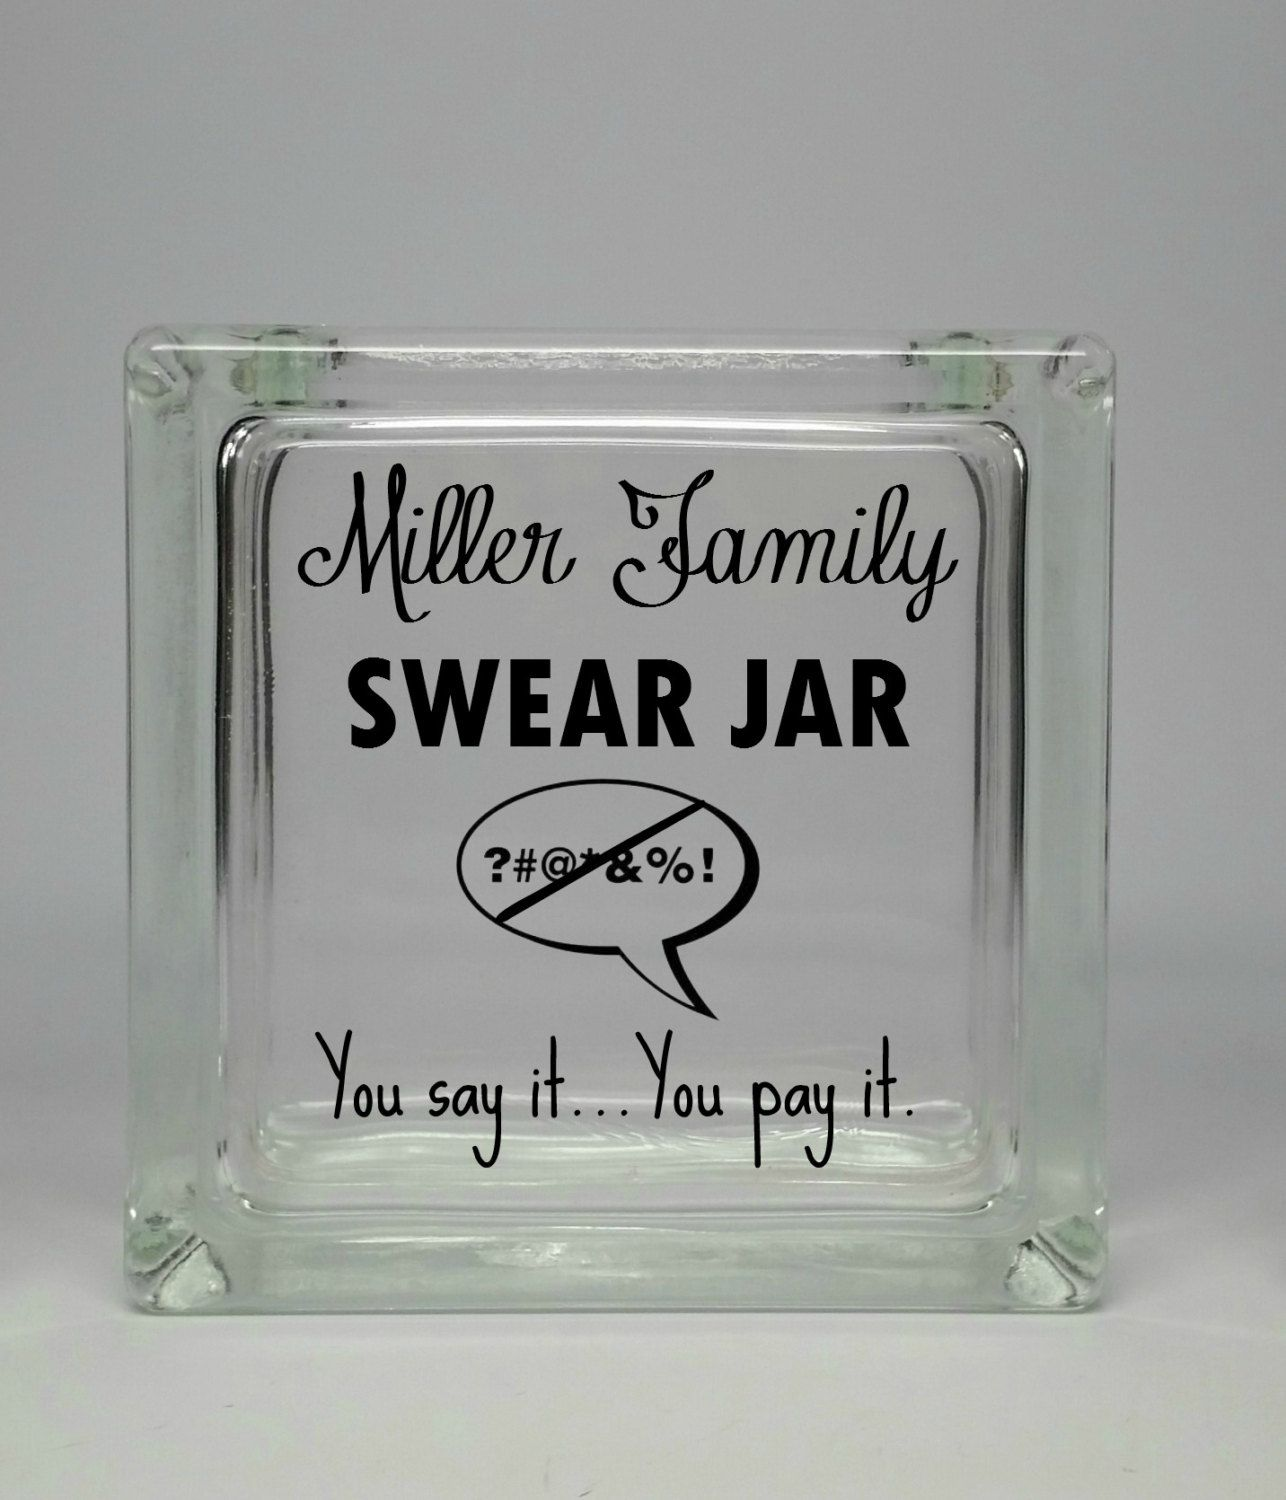 Family Swear Jar - Savings Bank - You Say It You Pay It - Family Curse Jar - Savings Coin Jar - Personalized Curse Jar - Funny Family Gift by SignsOLife on Etsy